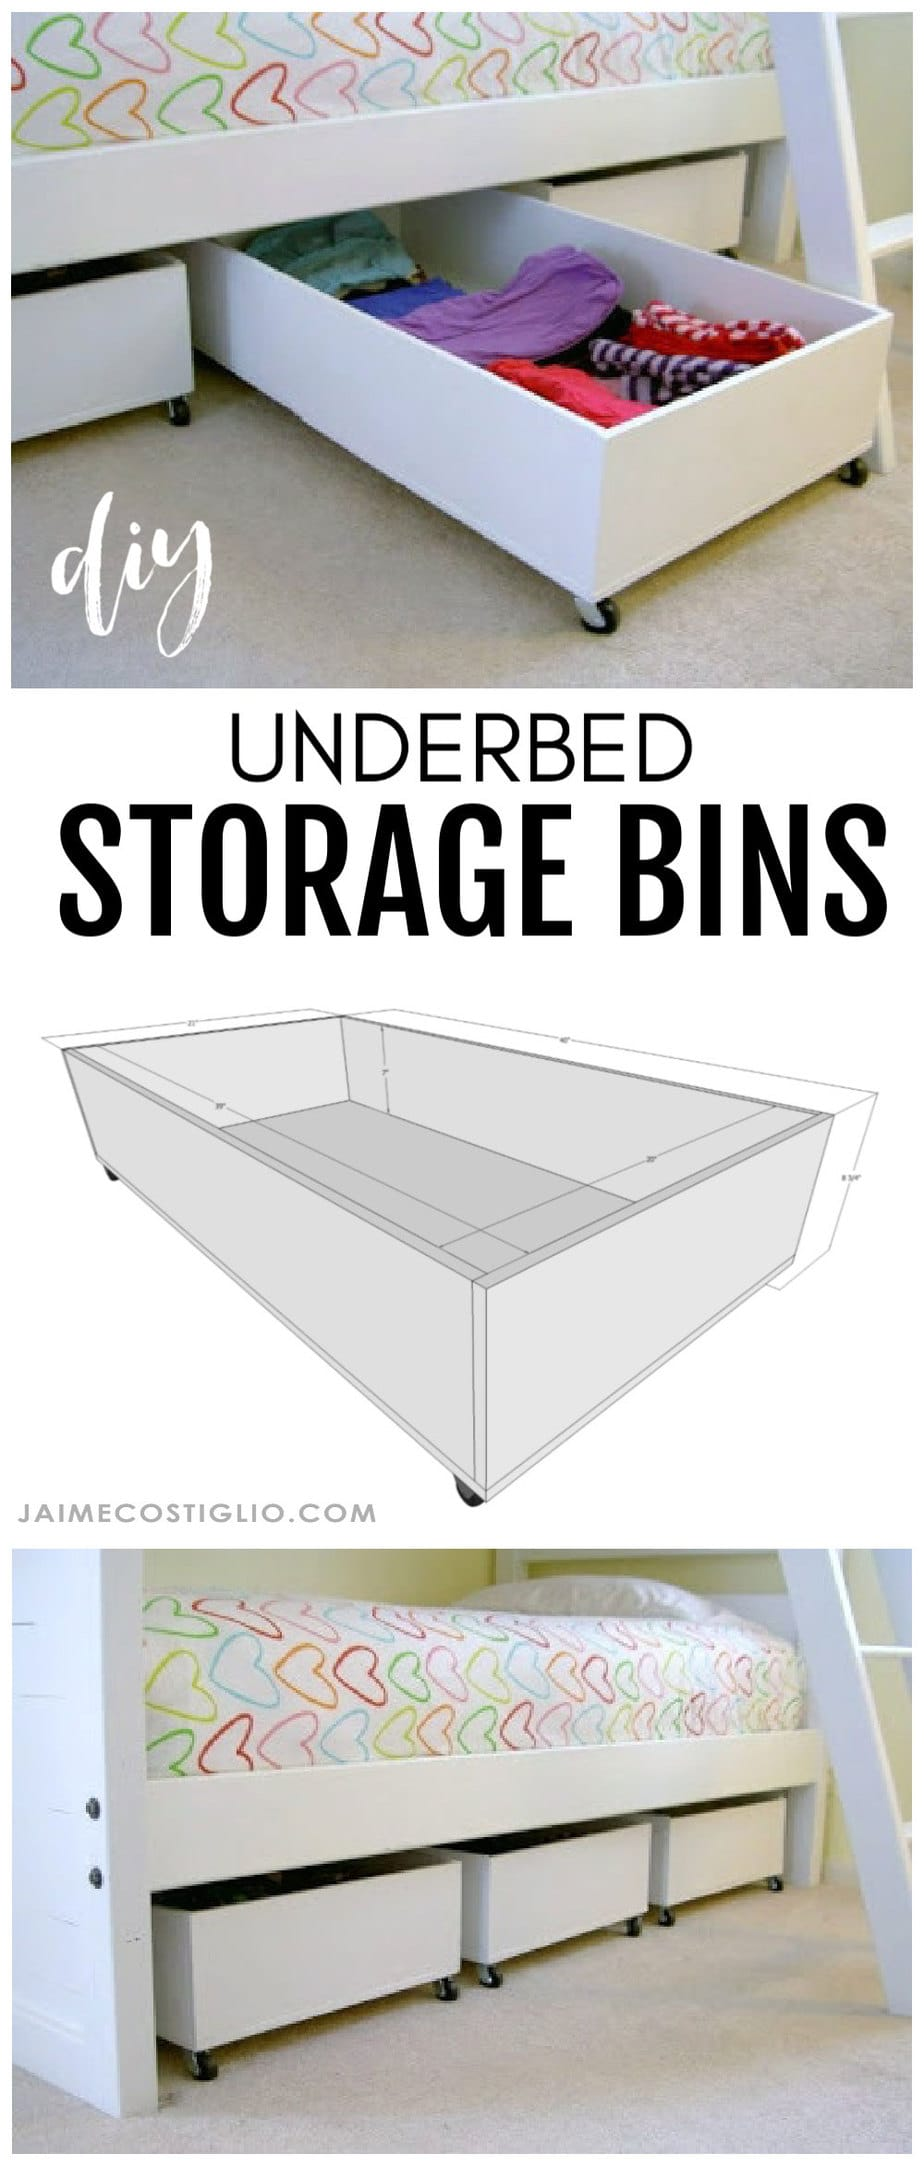 underbed storage bins free plans